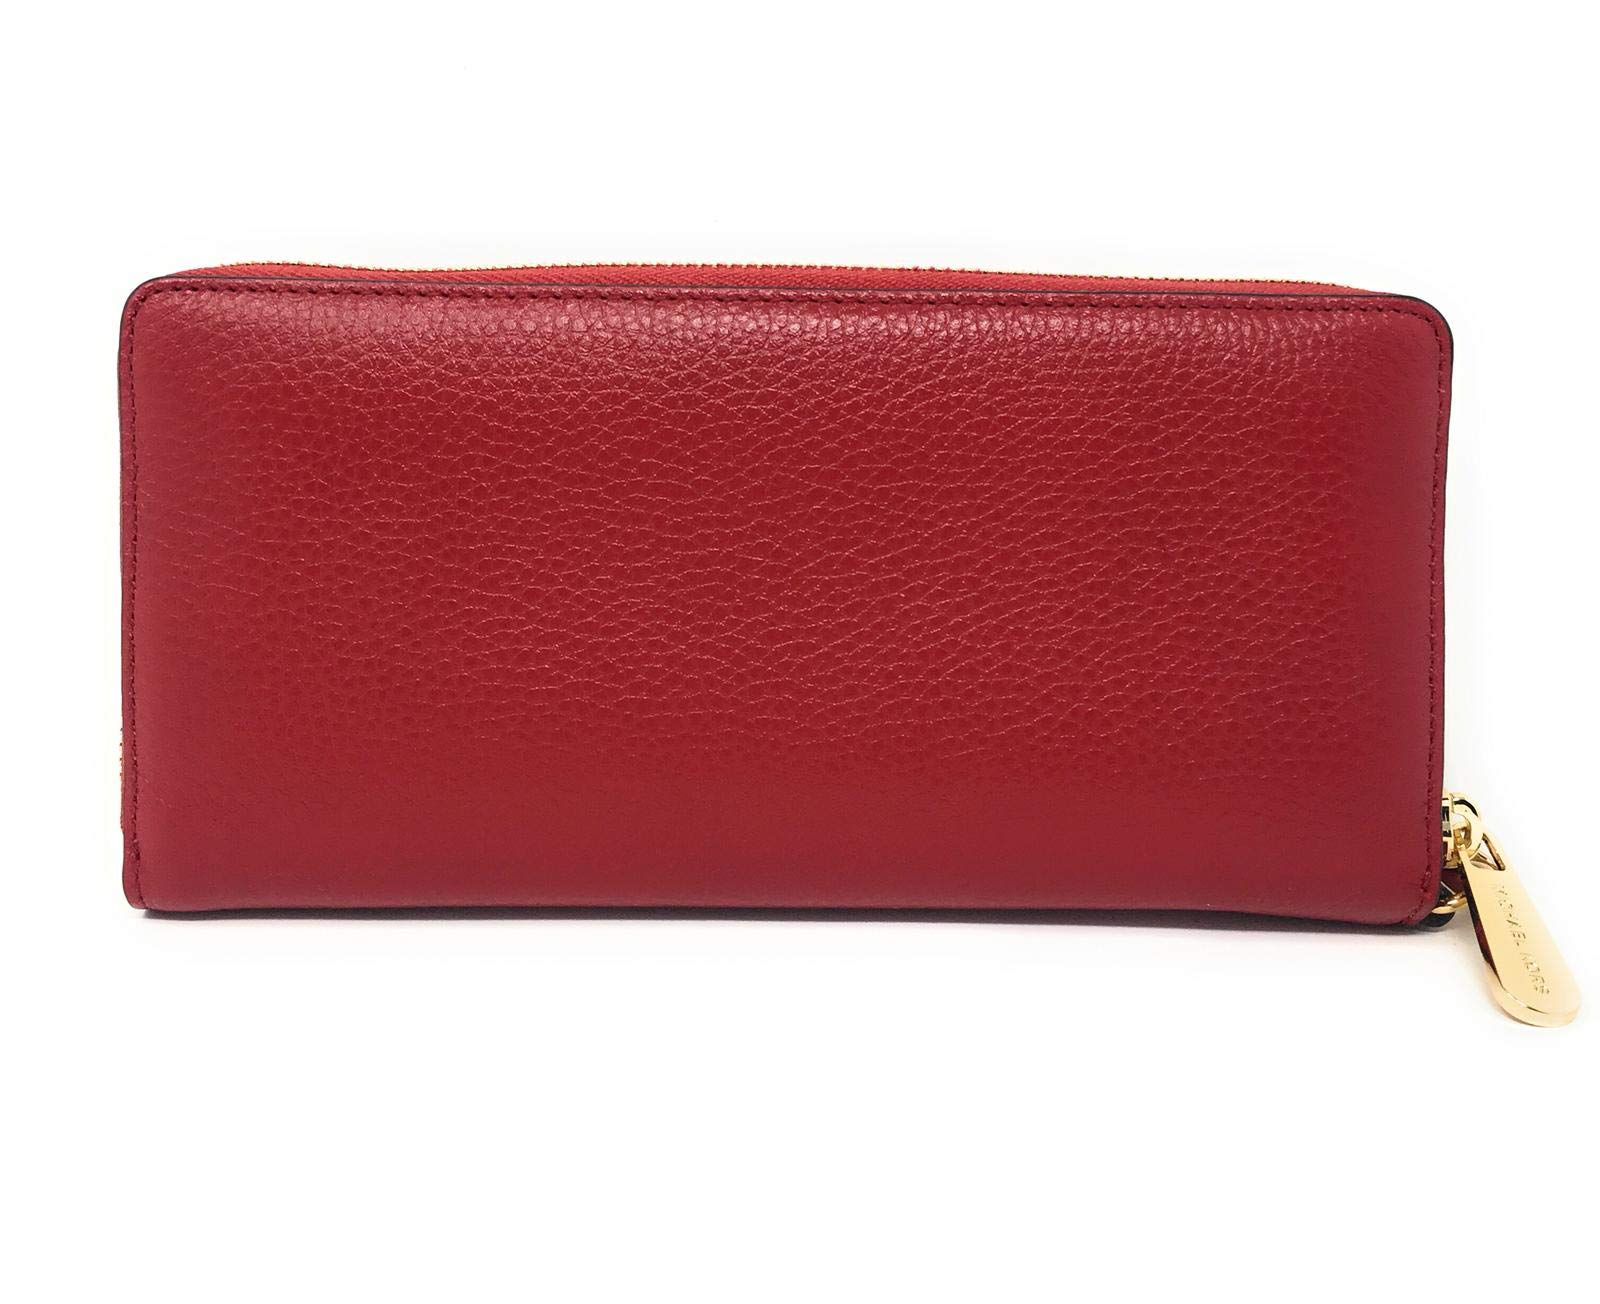 Michael Kors Jet Set Travel Continental Zip Around Leather Wallet Wristlet (Scarlet) by Michael Kors (Image #2)